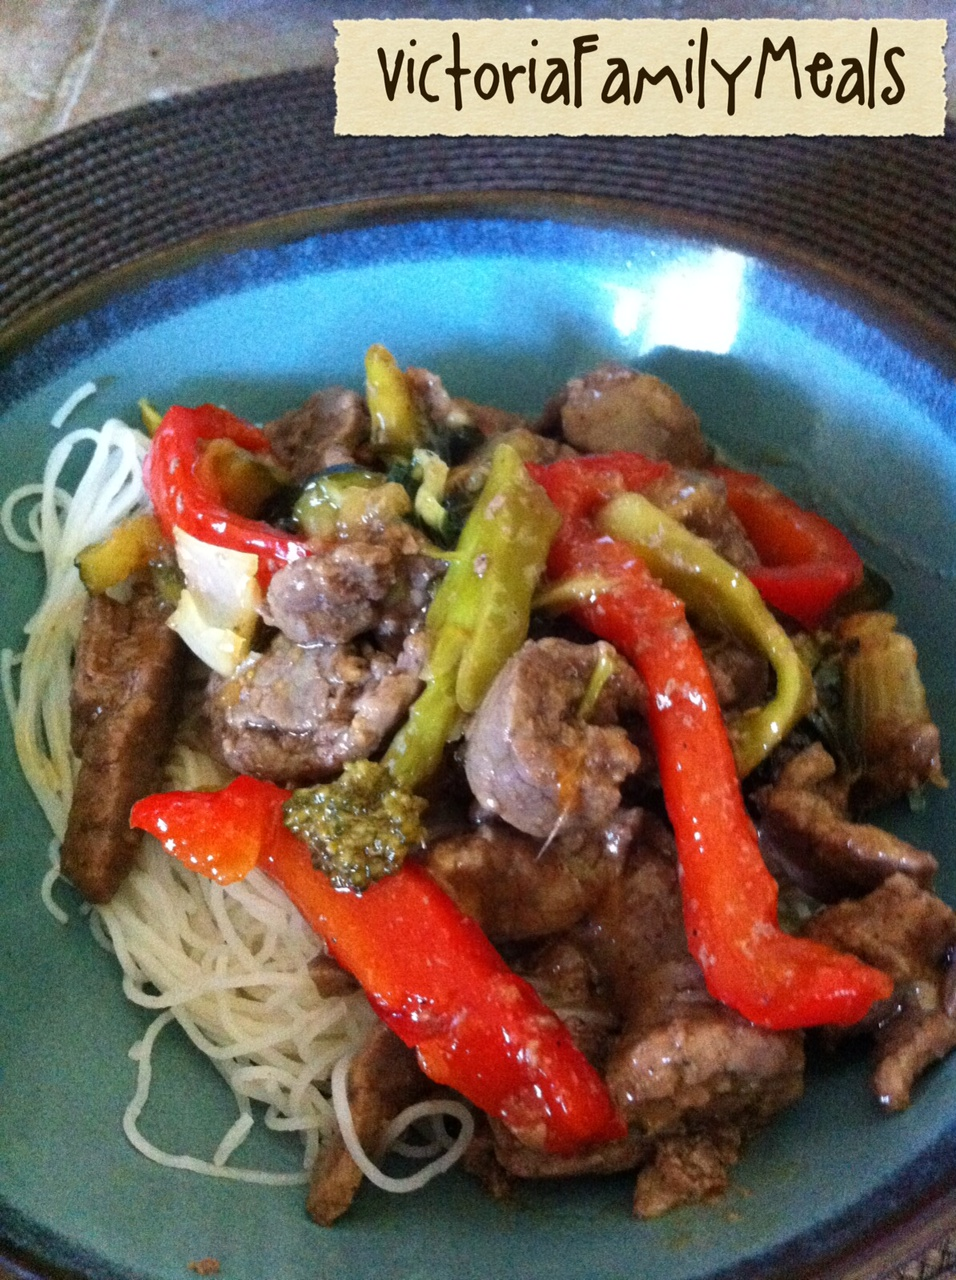 Victoria Family Meals: Korean Beef Stir Fry